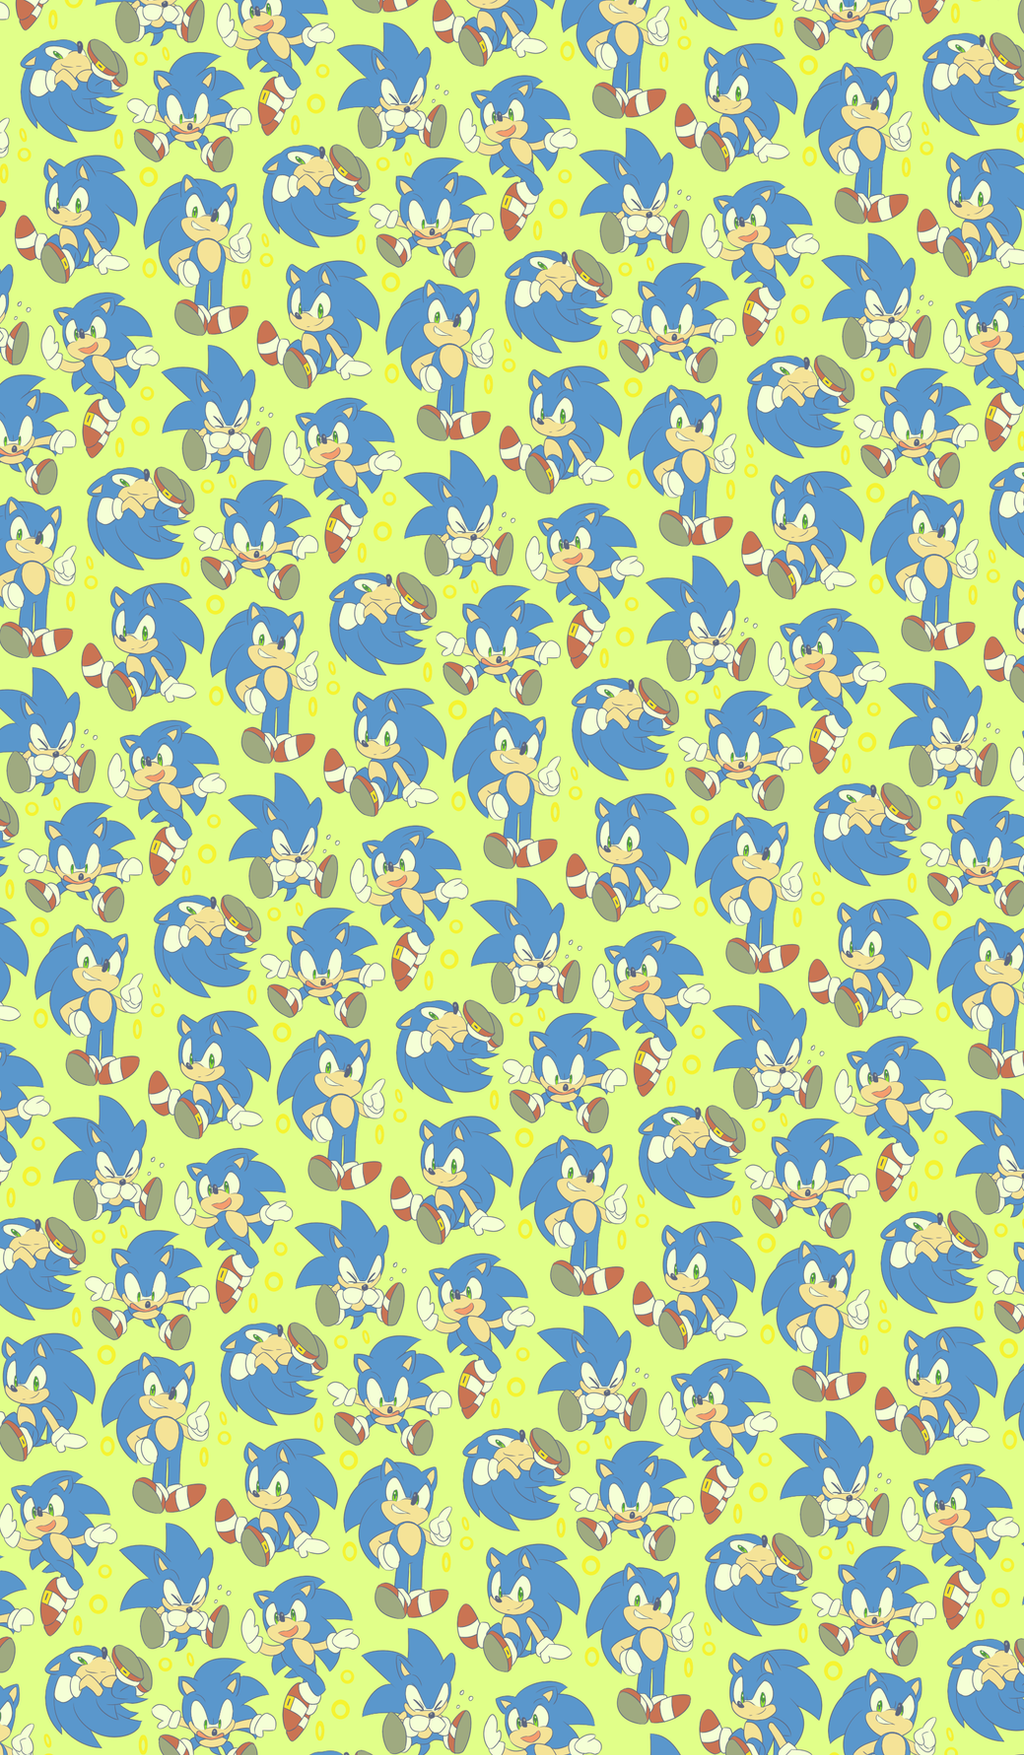 http://img11.deviantart.net/007c/i/2016/162/3/5/sonic_green_background_by_myly14-da5un63.png